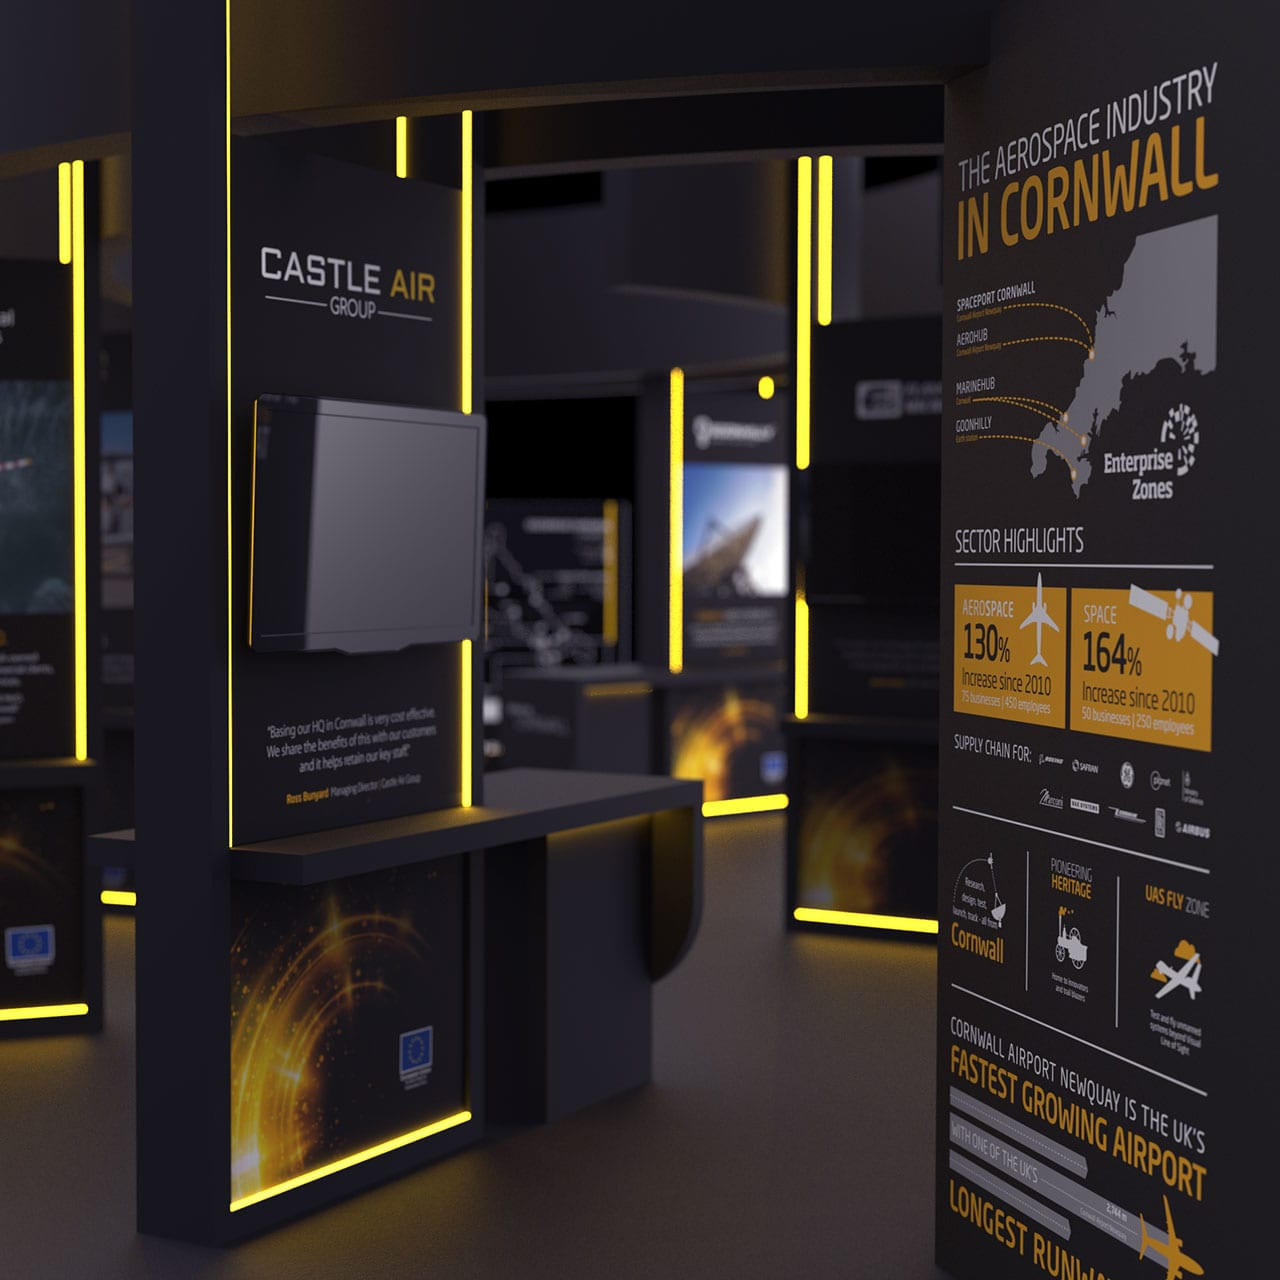 3D render of the interior design of the exhibition stand for Aerospace and Spaceport Cornwall